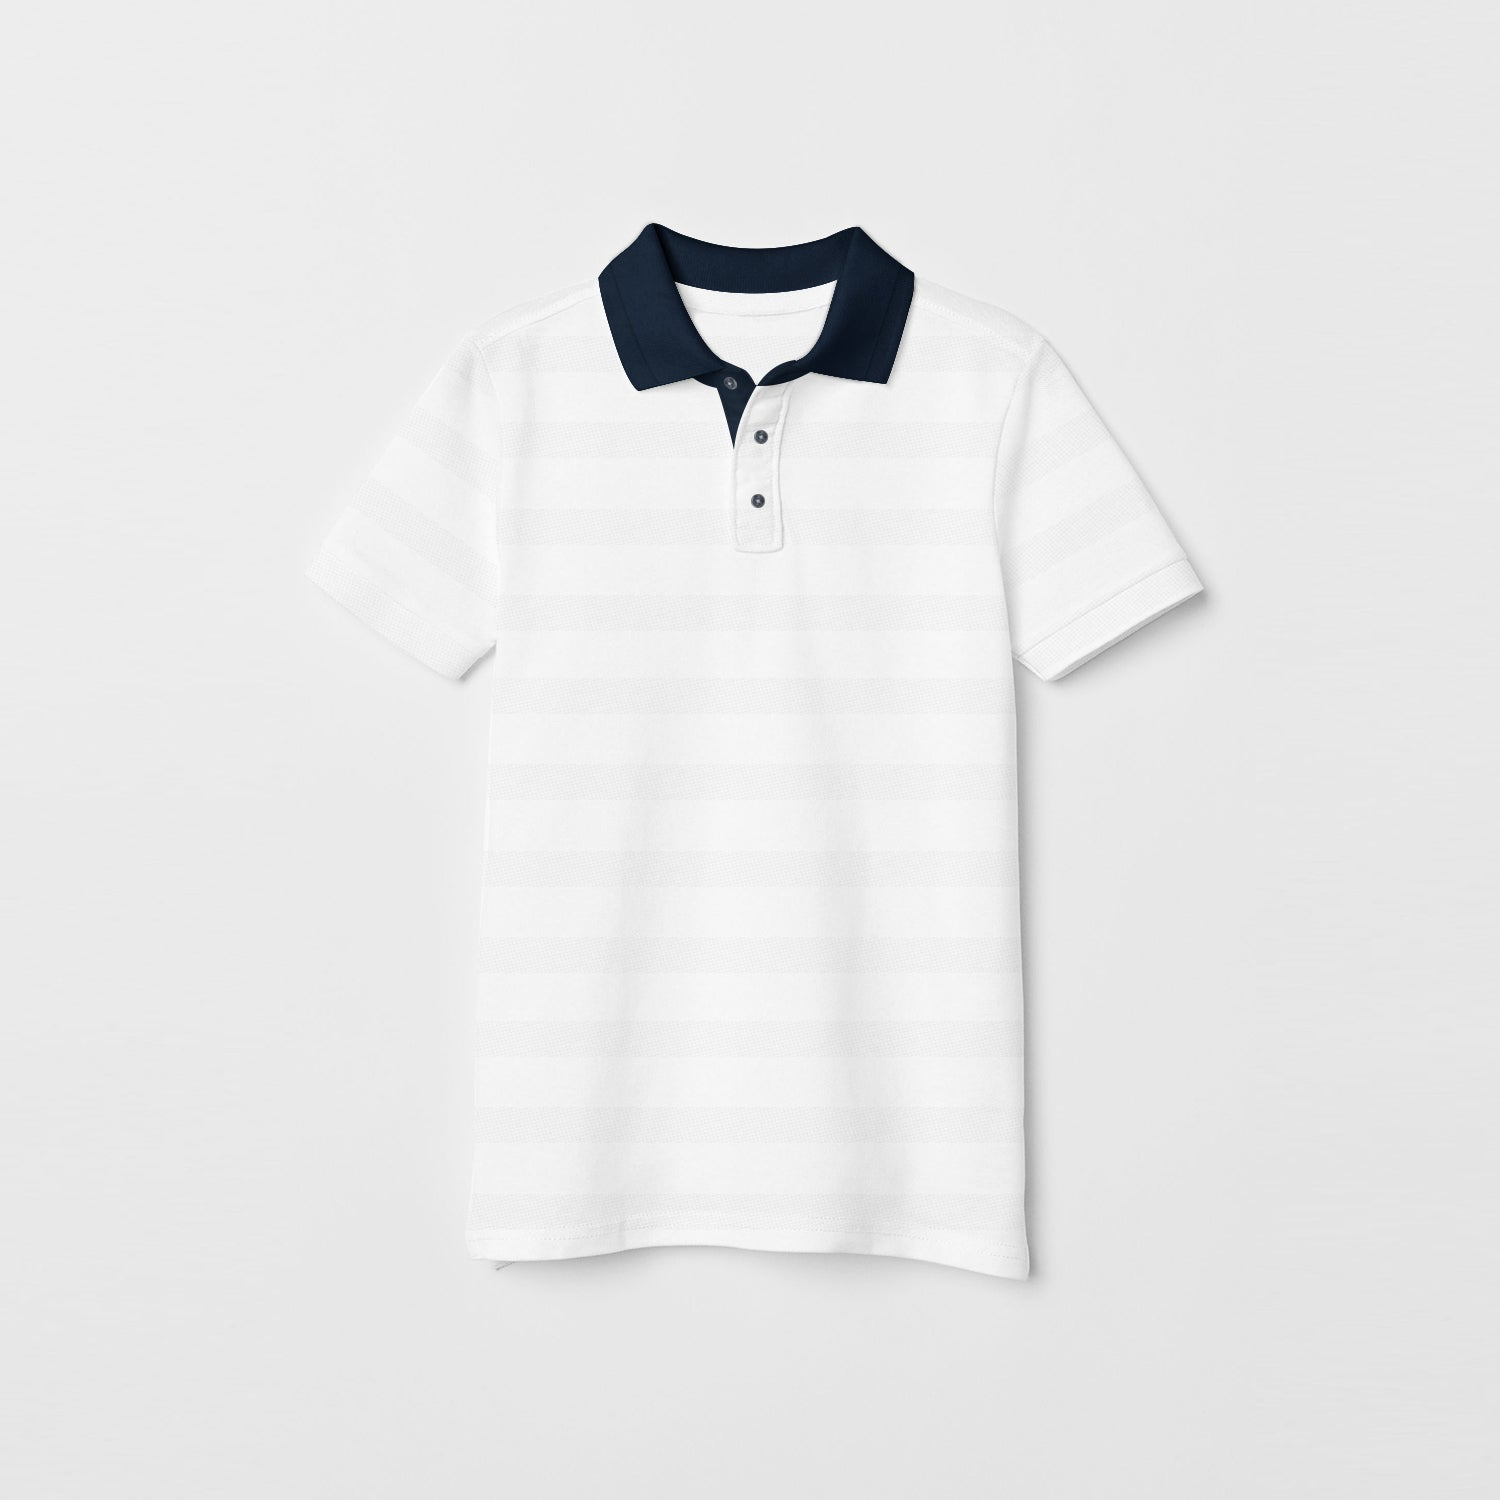 NEXT Single Jersey Polo Shirt For Kids-White-BE9410